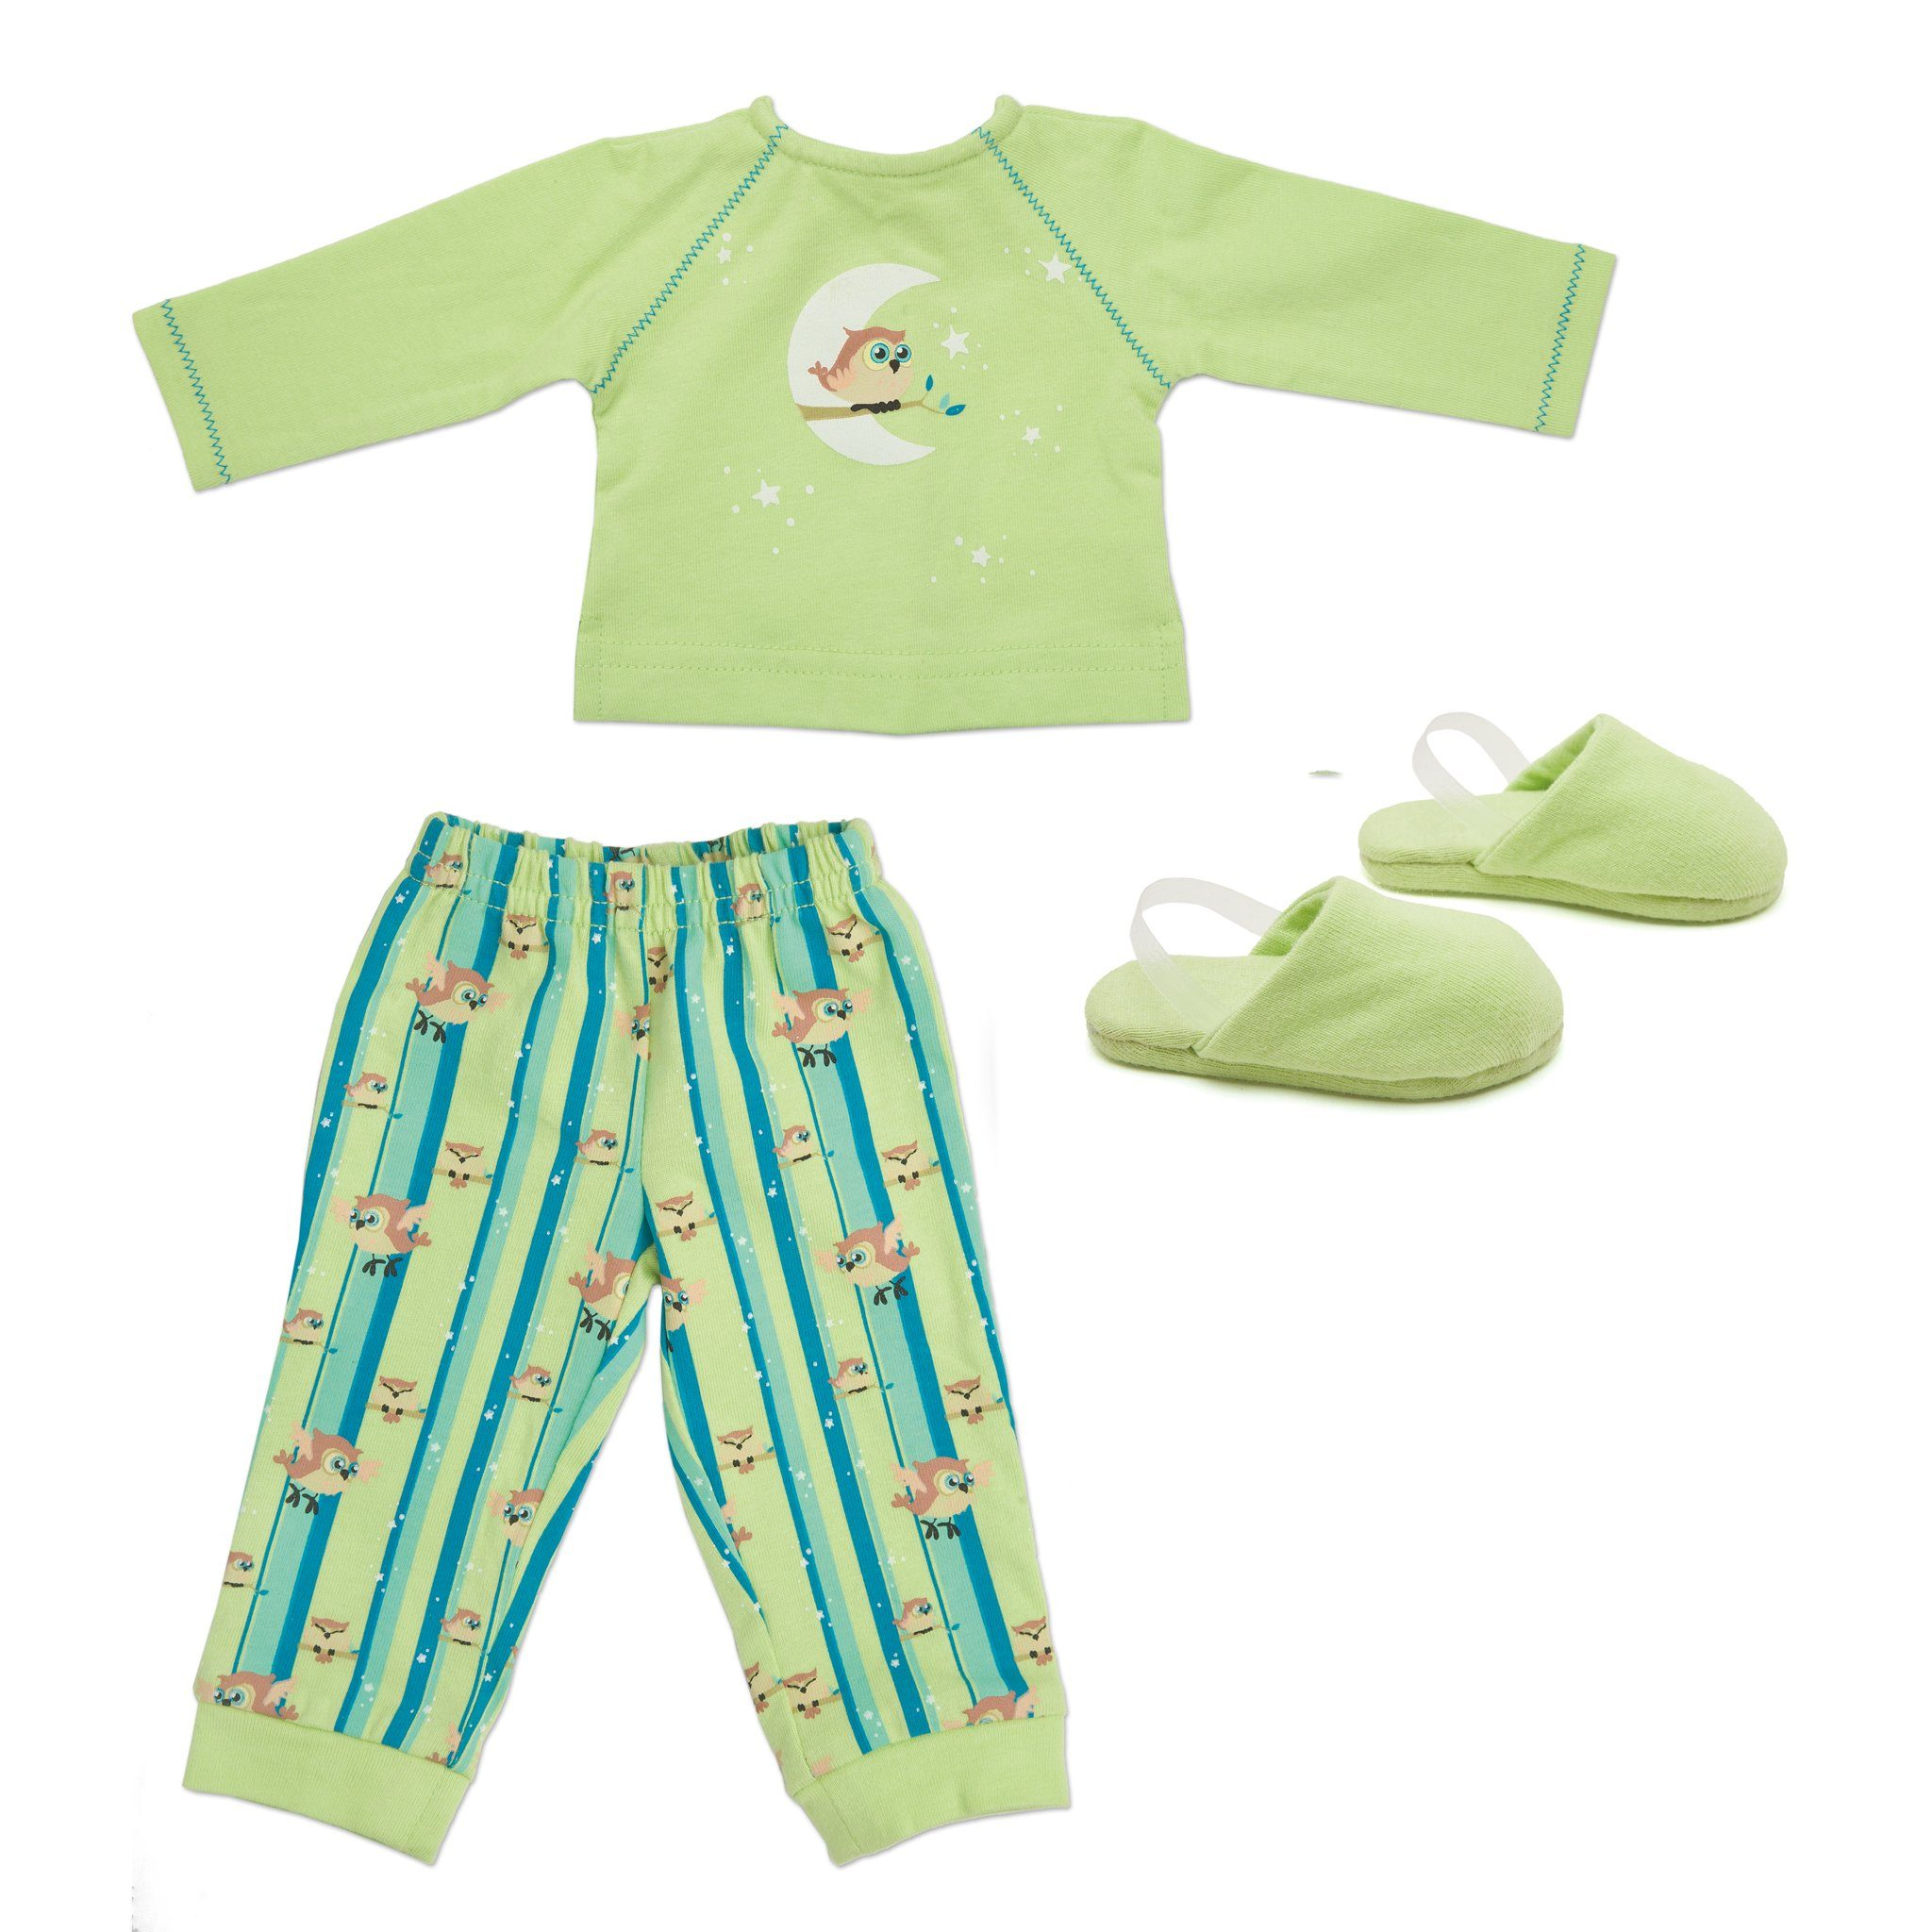 Night Owl Nightwear for 18 inch dolls includes two piece pajamas with owl graphic and slippers.